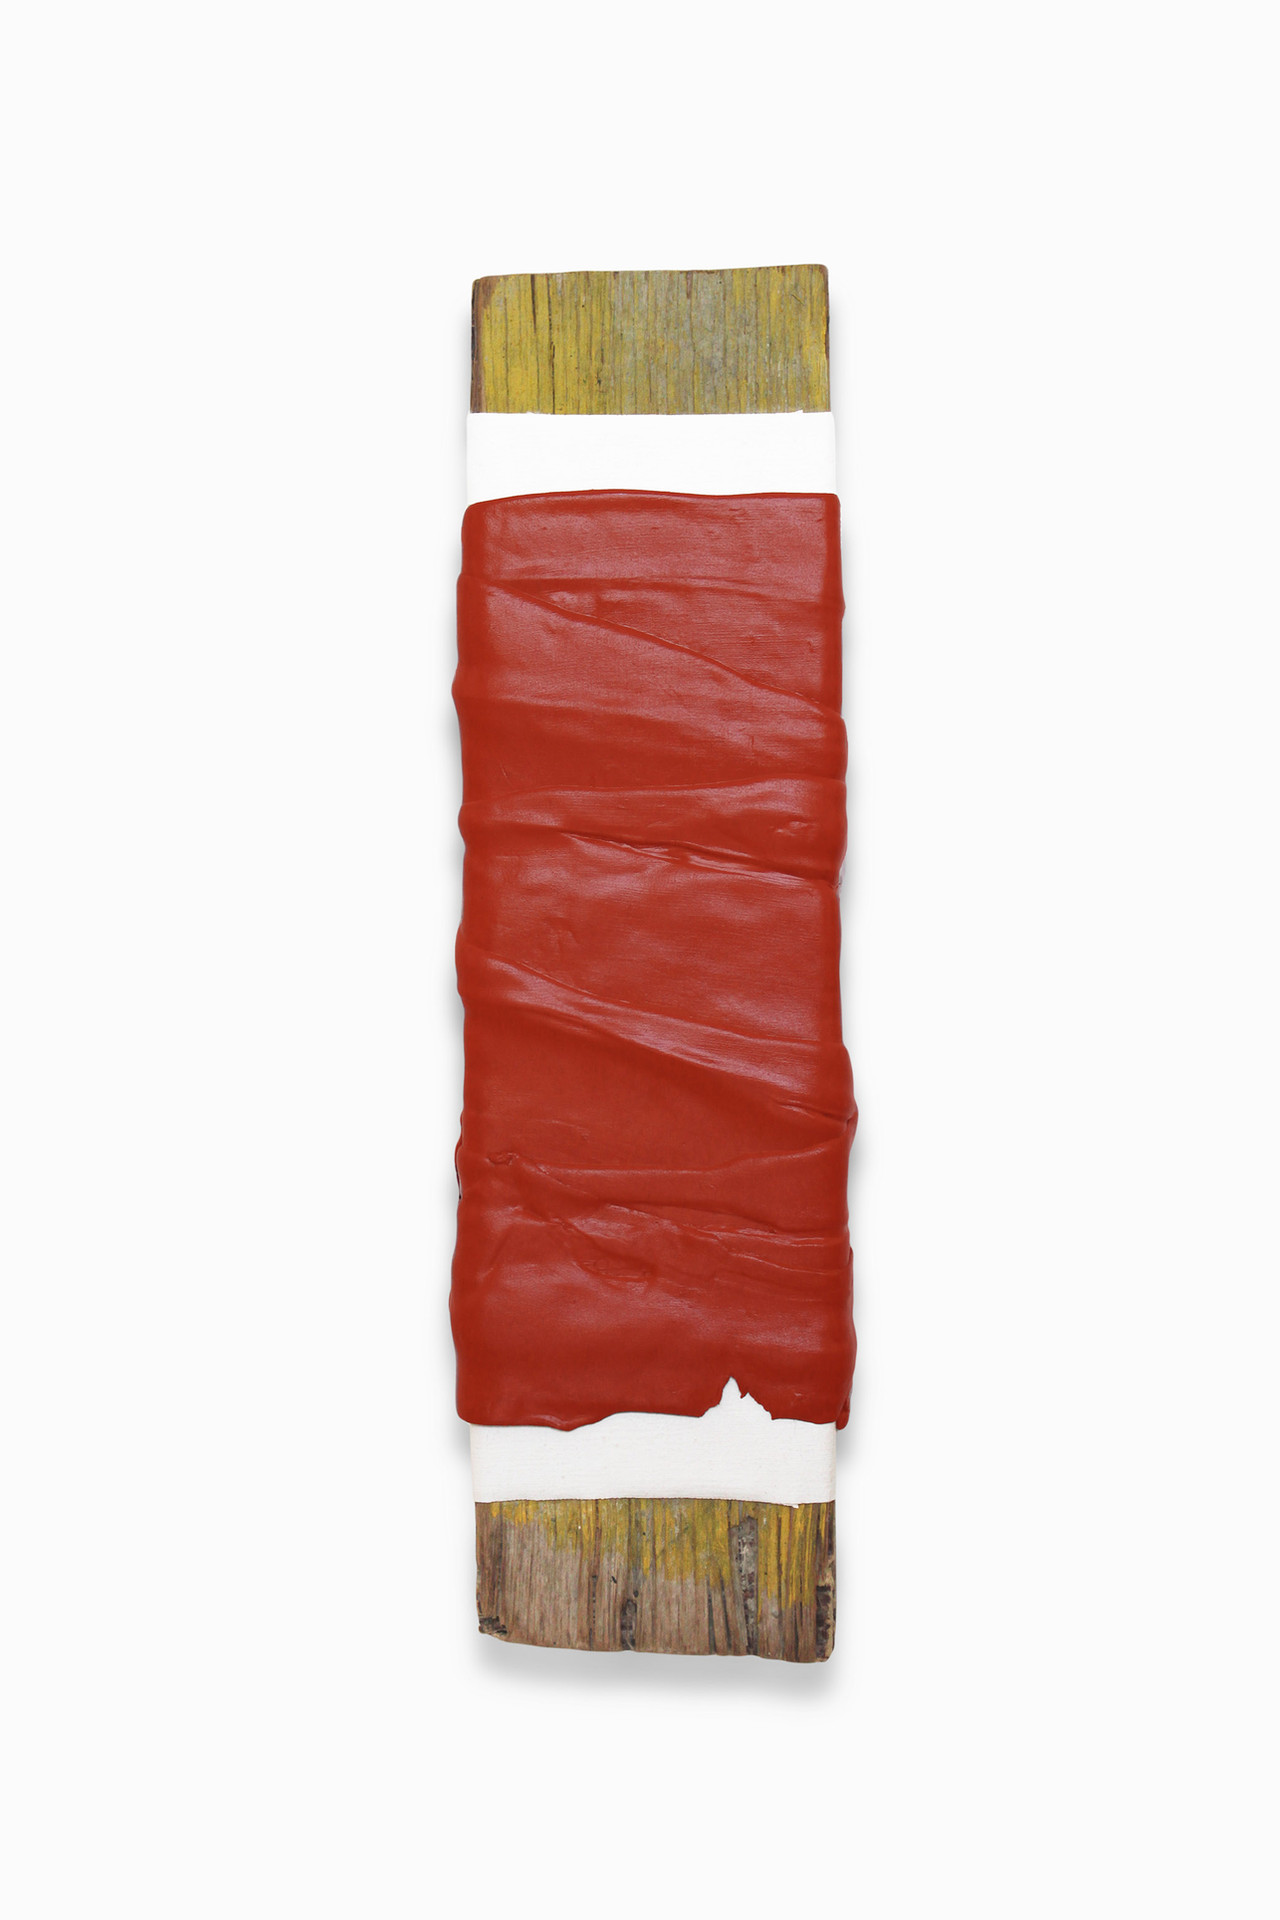 Untitled, 2014. Acrylic, canvas and wooden stick. 32 x 9 cm.